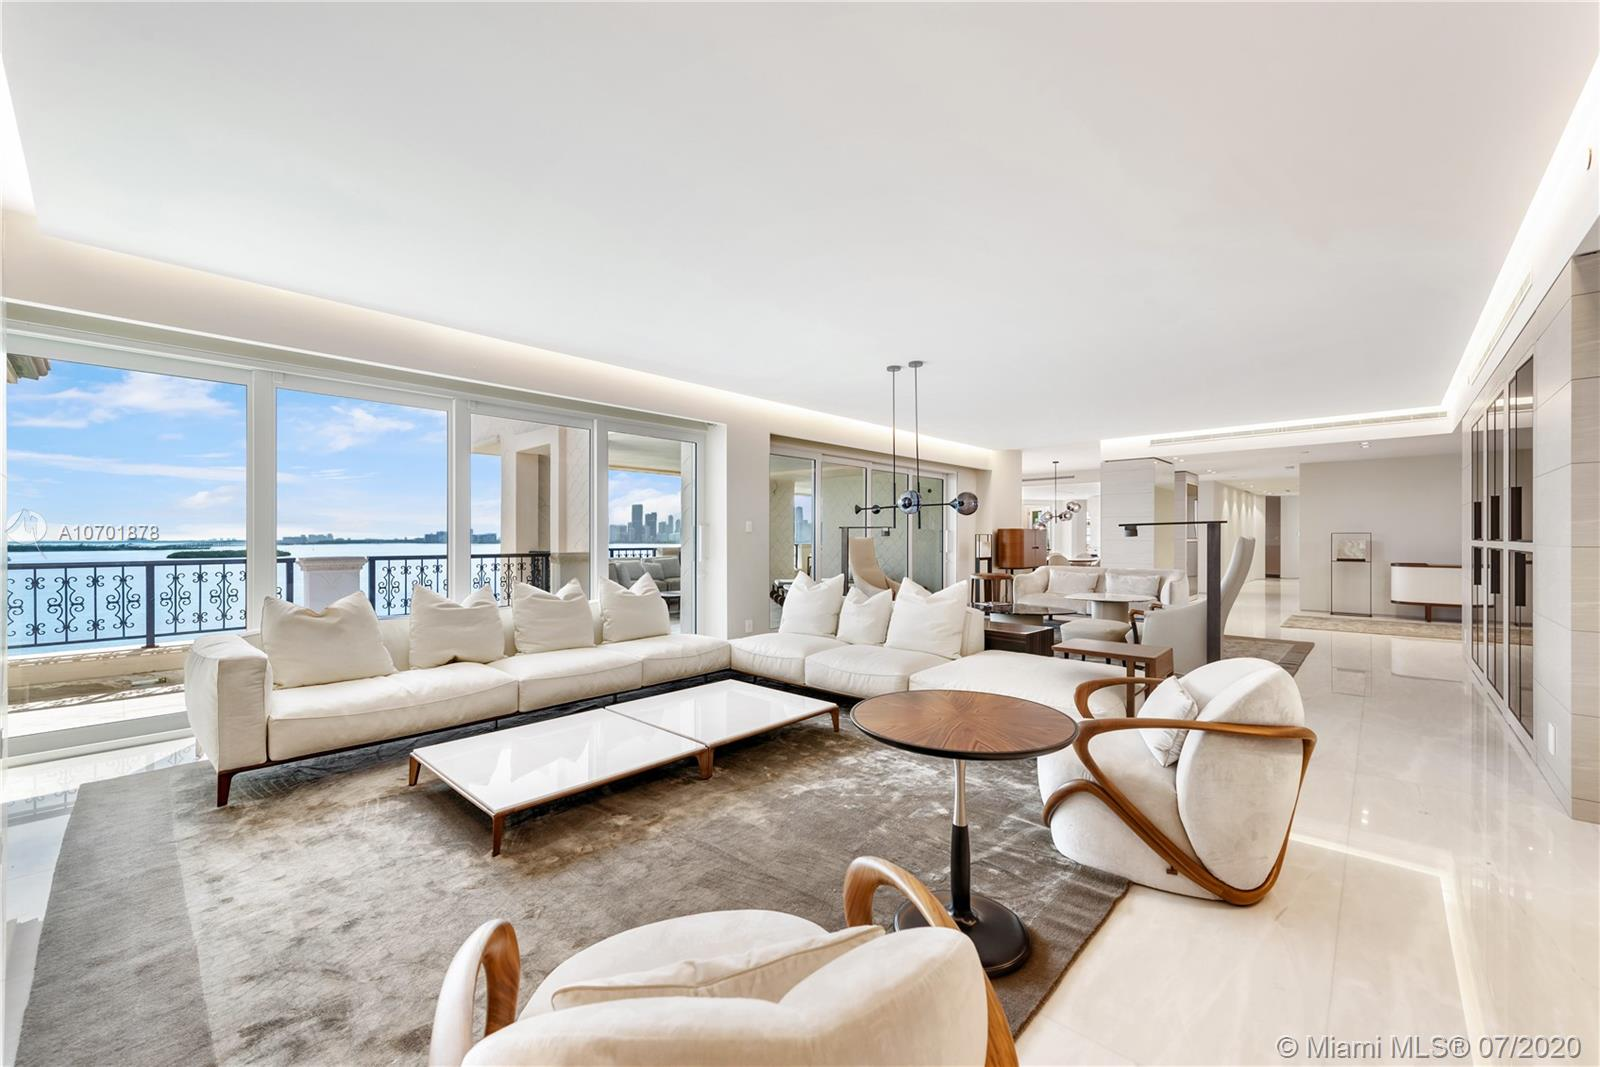 Complete spectacular renovation finished the end of 2019. This beautiful Bayview lower PH is the first unit in the US to be totally designed & furnished A-Z by Giorgetti. 6BR/7+1BA (Incl. separate staff BR) & over 2,000 SF of terraces with Miami Beach and sunrise views plus unobstructed Bay & Downtown Miami Skyline sunset views. Boasts Italian marble & oak floors in all bedrooms, open flowing living/dining area & family media room. Gourmet kitchen w/top of the line Miele appliances, center island & 4 wine chillers. Bay-facing principal suite with a large office & separate dual principal baths w/Turkish sauna, glass & onyx shower & voluminous walk-in closet. Smart home with new WinDoor motorized sliding doors & full replacement of AC & electric systems.